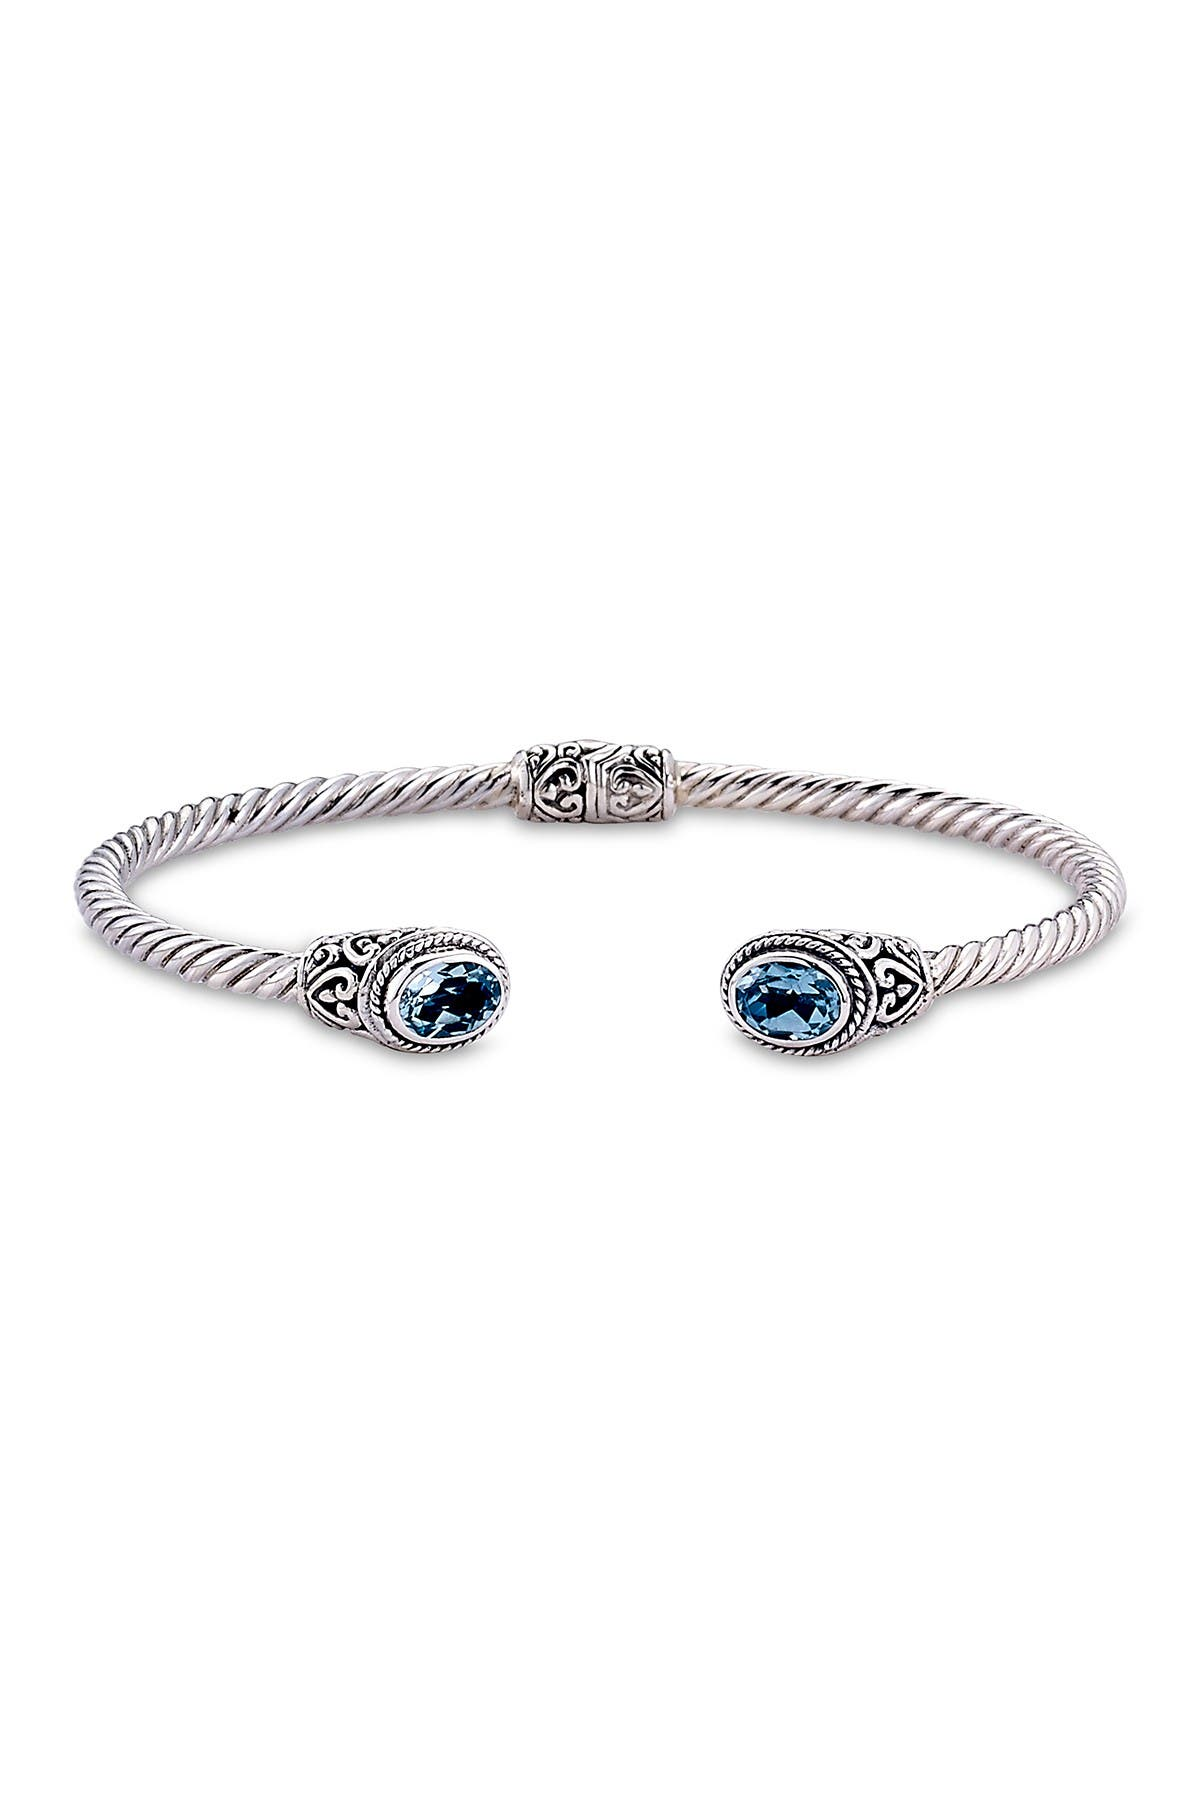 Image of Samuel B Jewelry Sterling Silver Blue Topaz Twisted Cable Bangle Bracelet